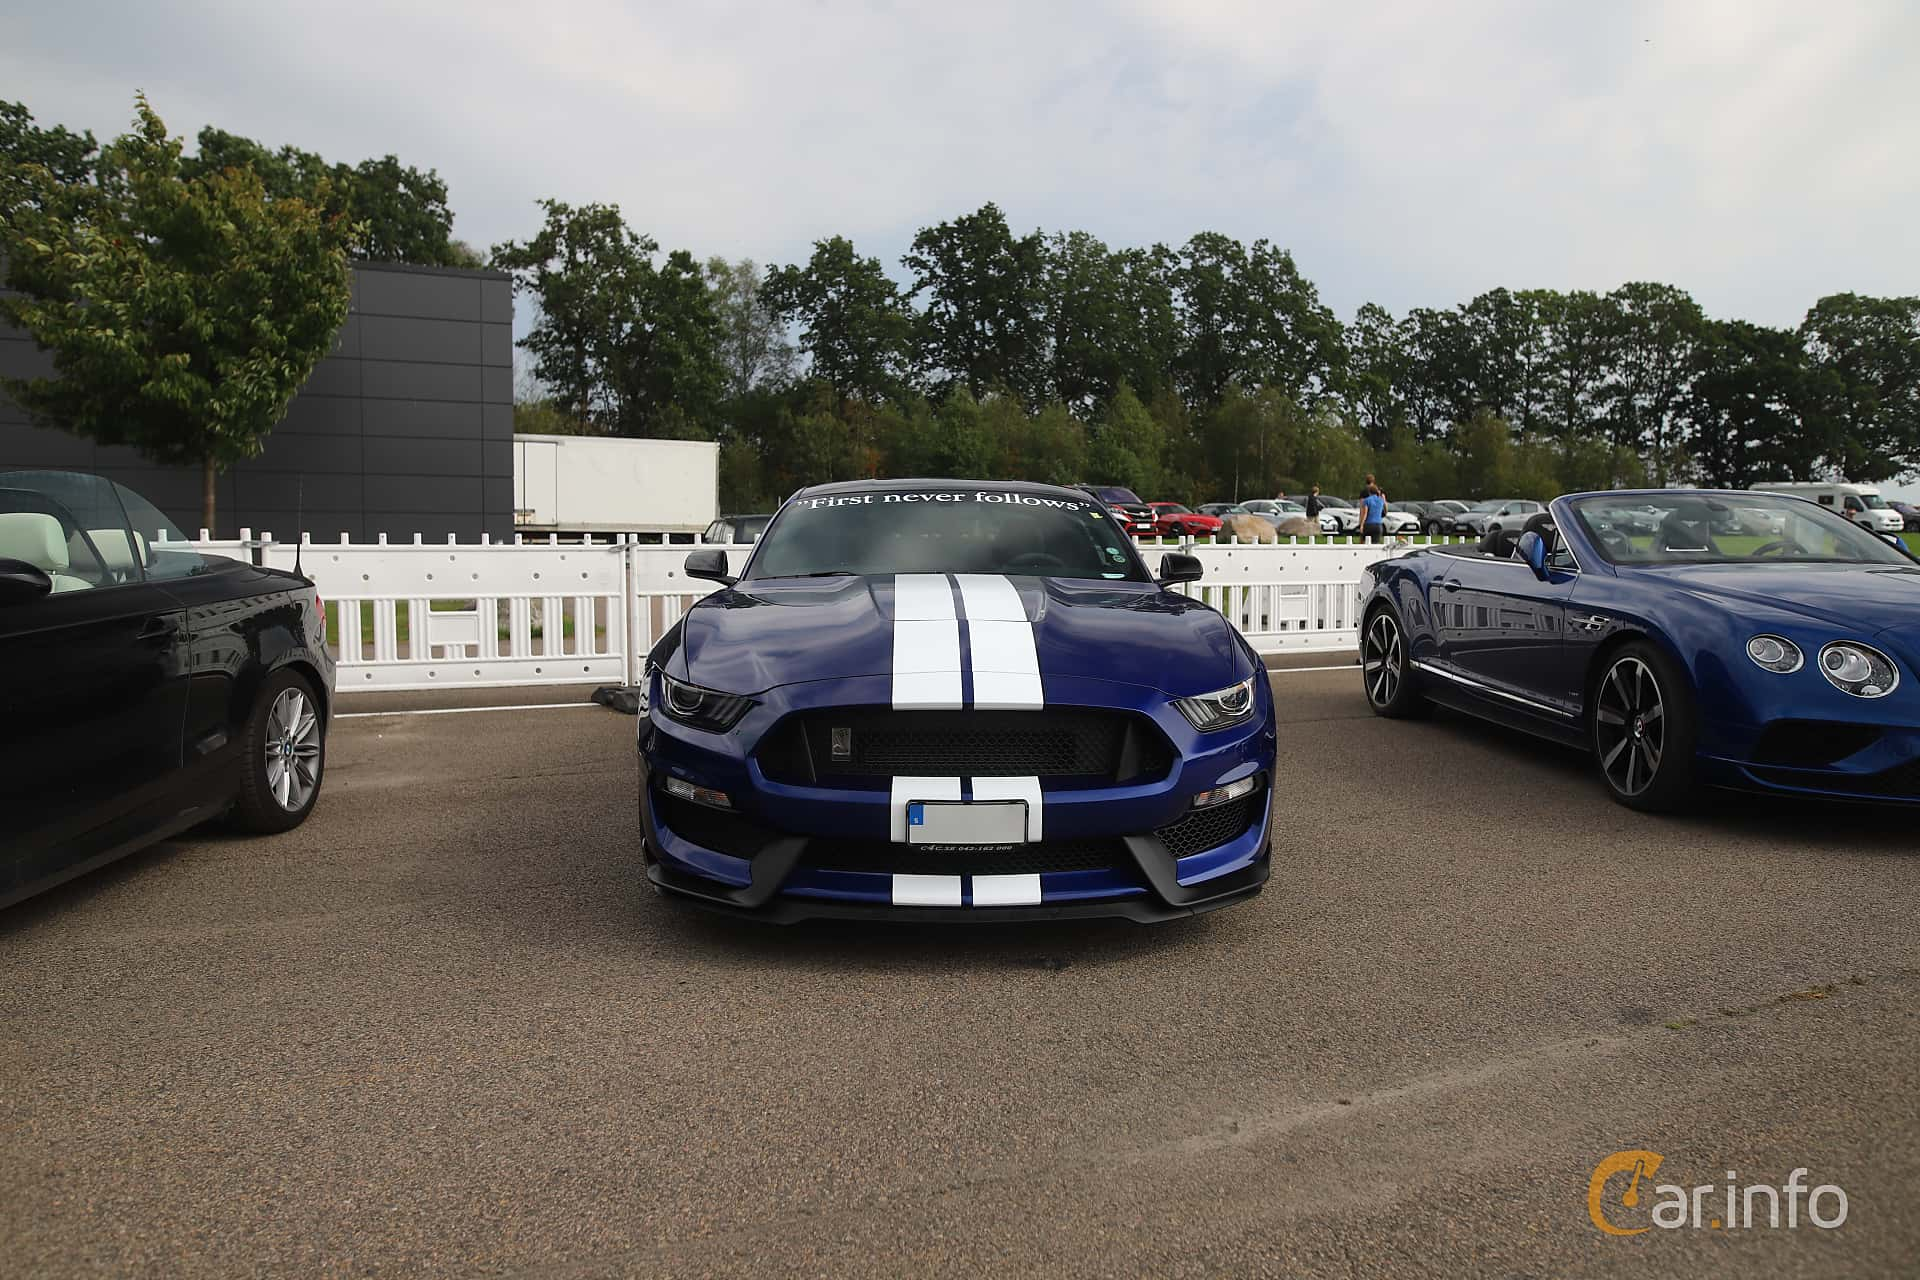 Ford Mustang Shelby GT350 5.2 V8 Manual, 533hp, 2016 at Autoropa Racing day Knutstorp 2019